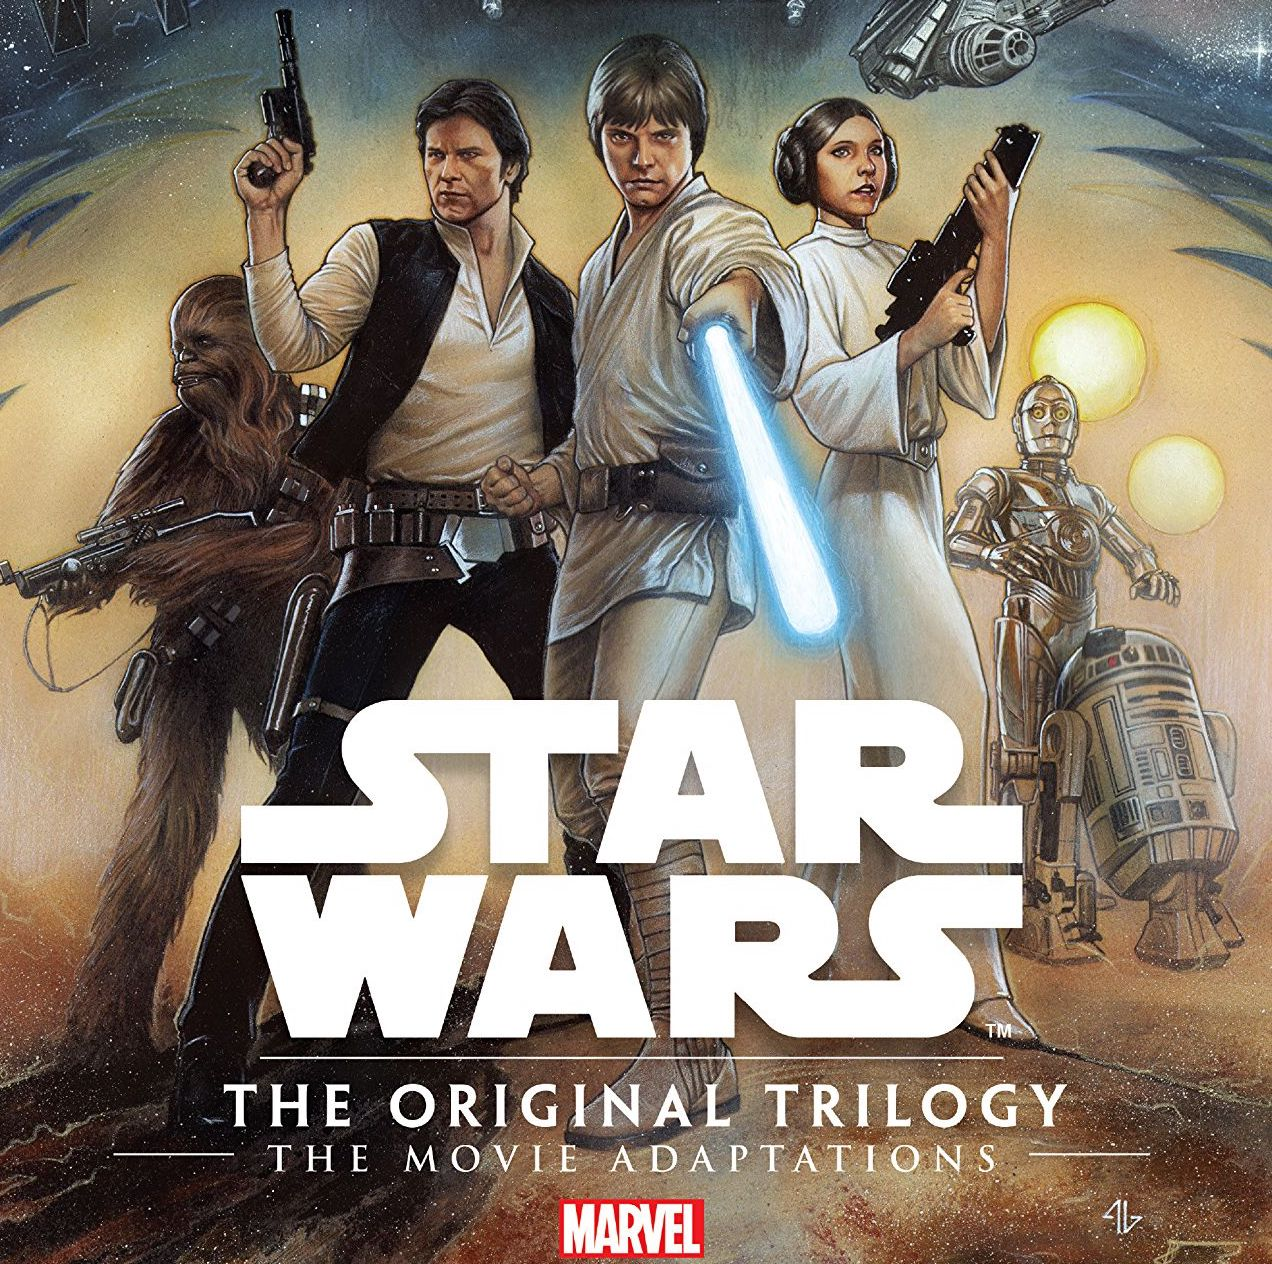 'Star Wars: The Original Trilogy - The Movie Adaptations' TPB Review